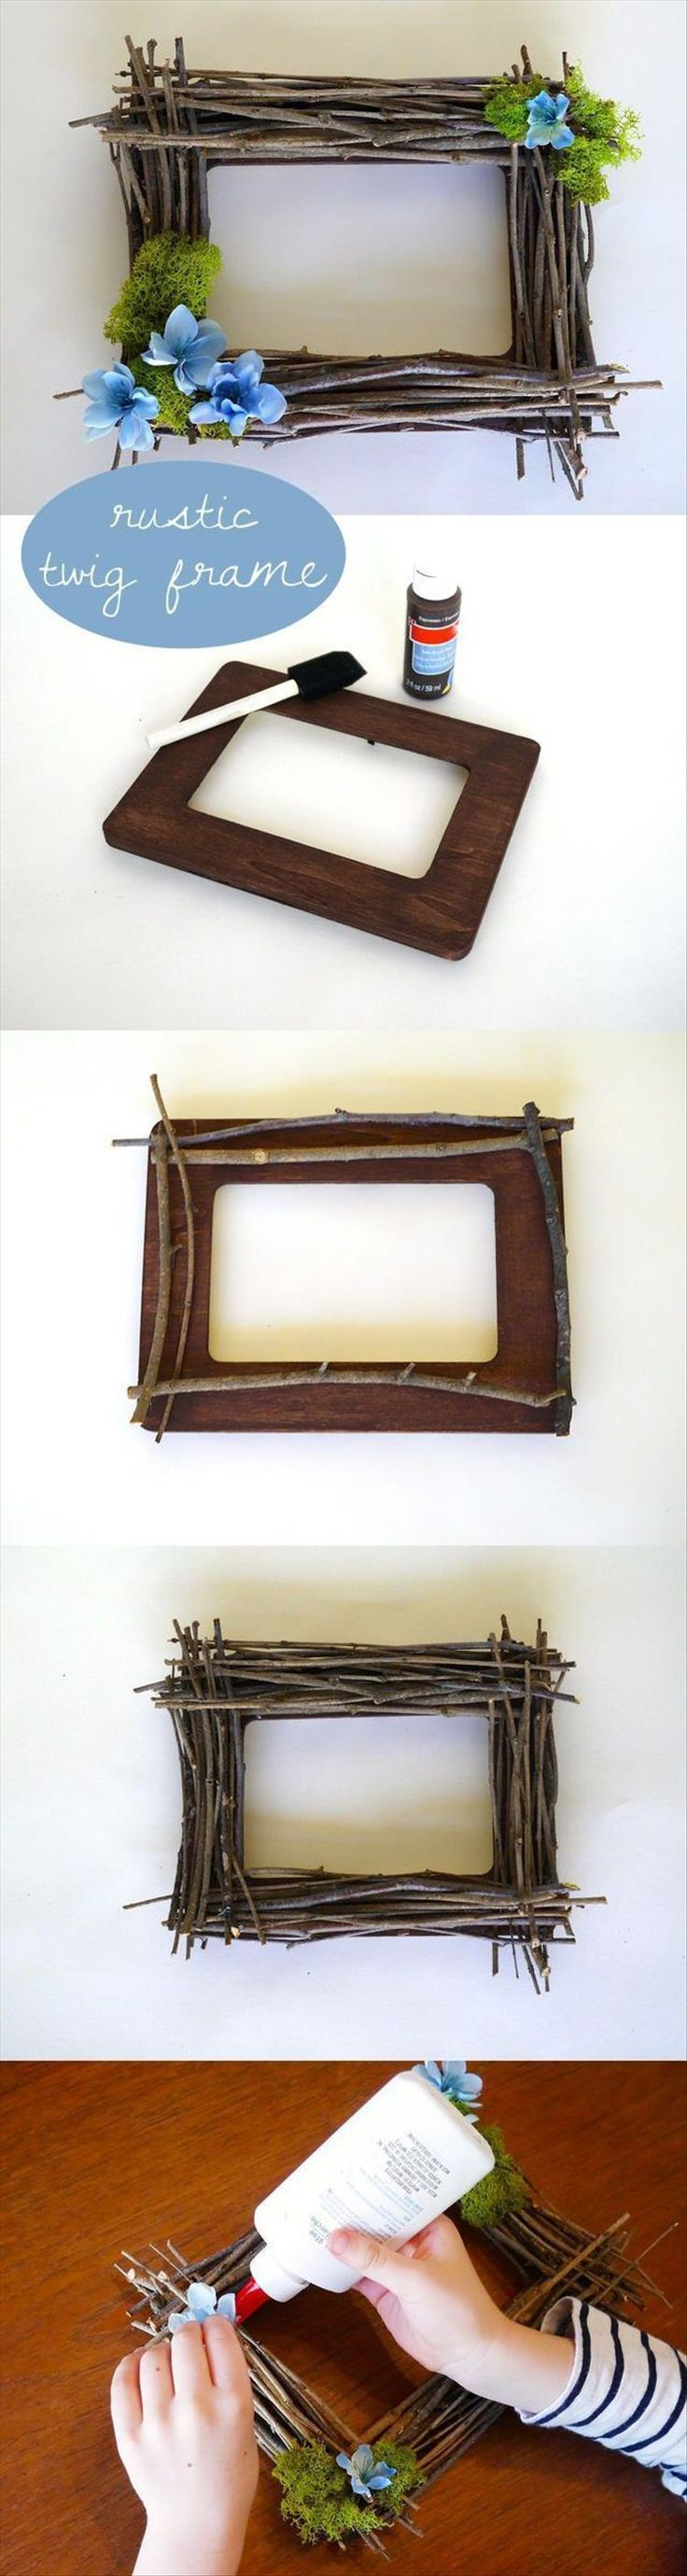 This Week's Best DIY Craft Ideas - 18 Pics